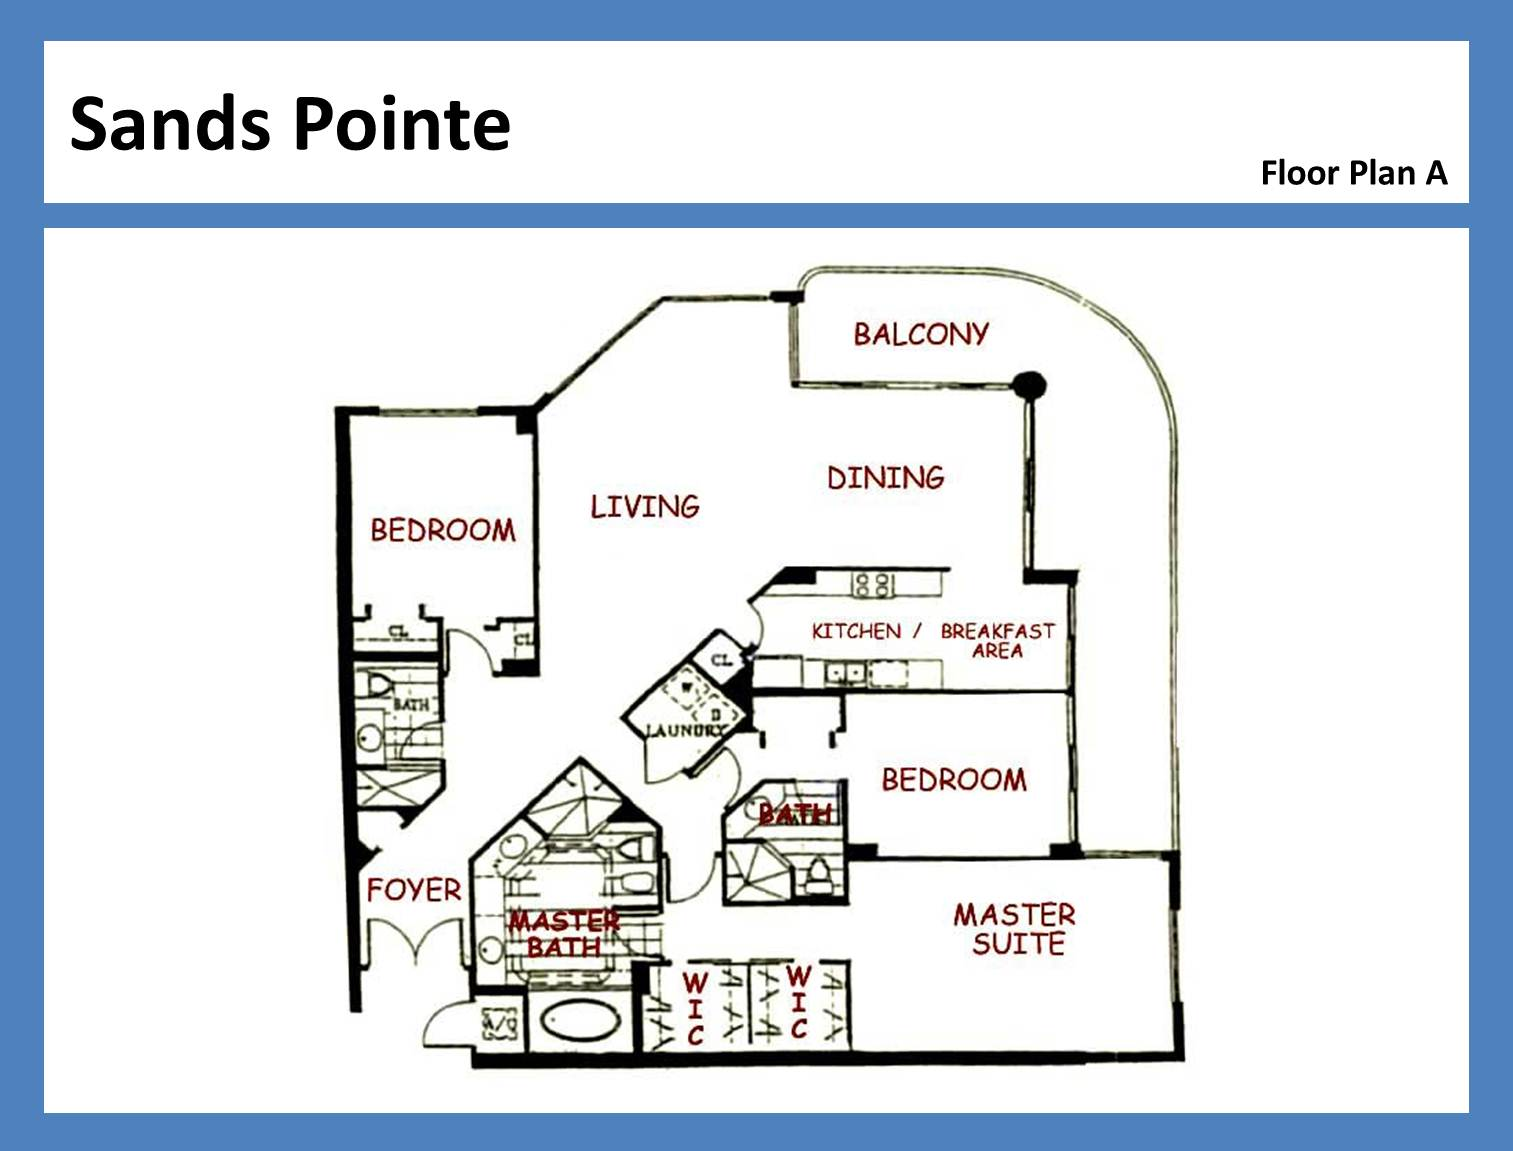 Sands Pointe - Floorplan 8